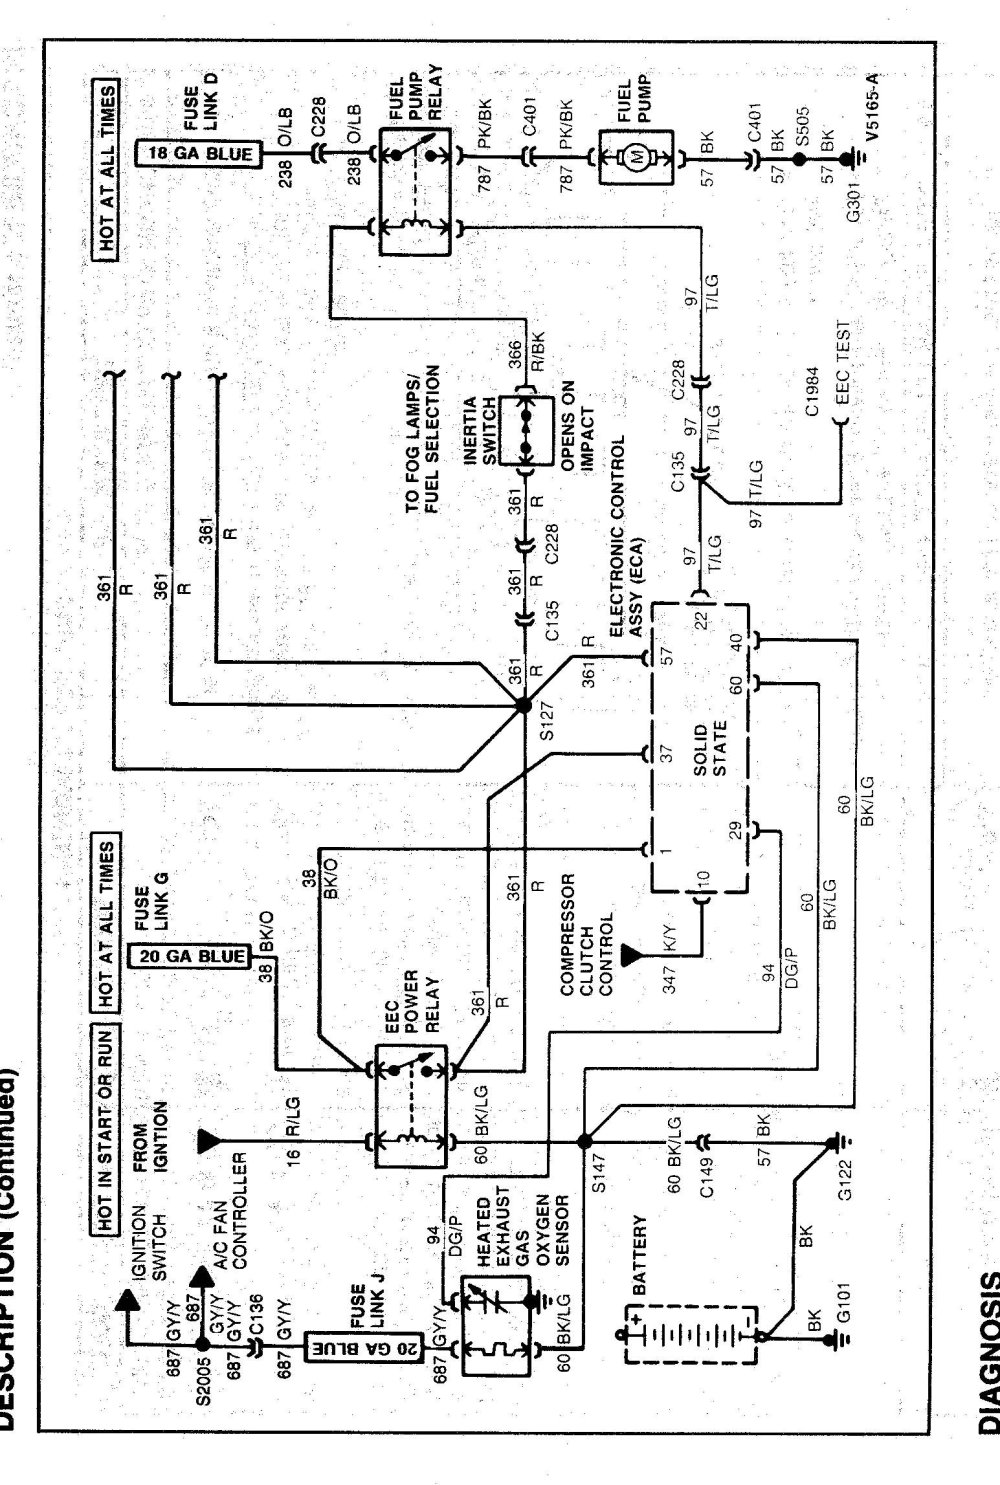 medium resolution of top suggestions 1990 mustang fuel injector schematic